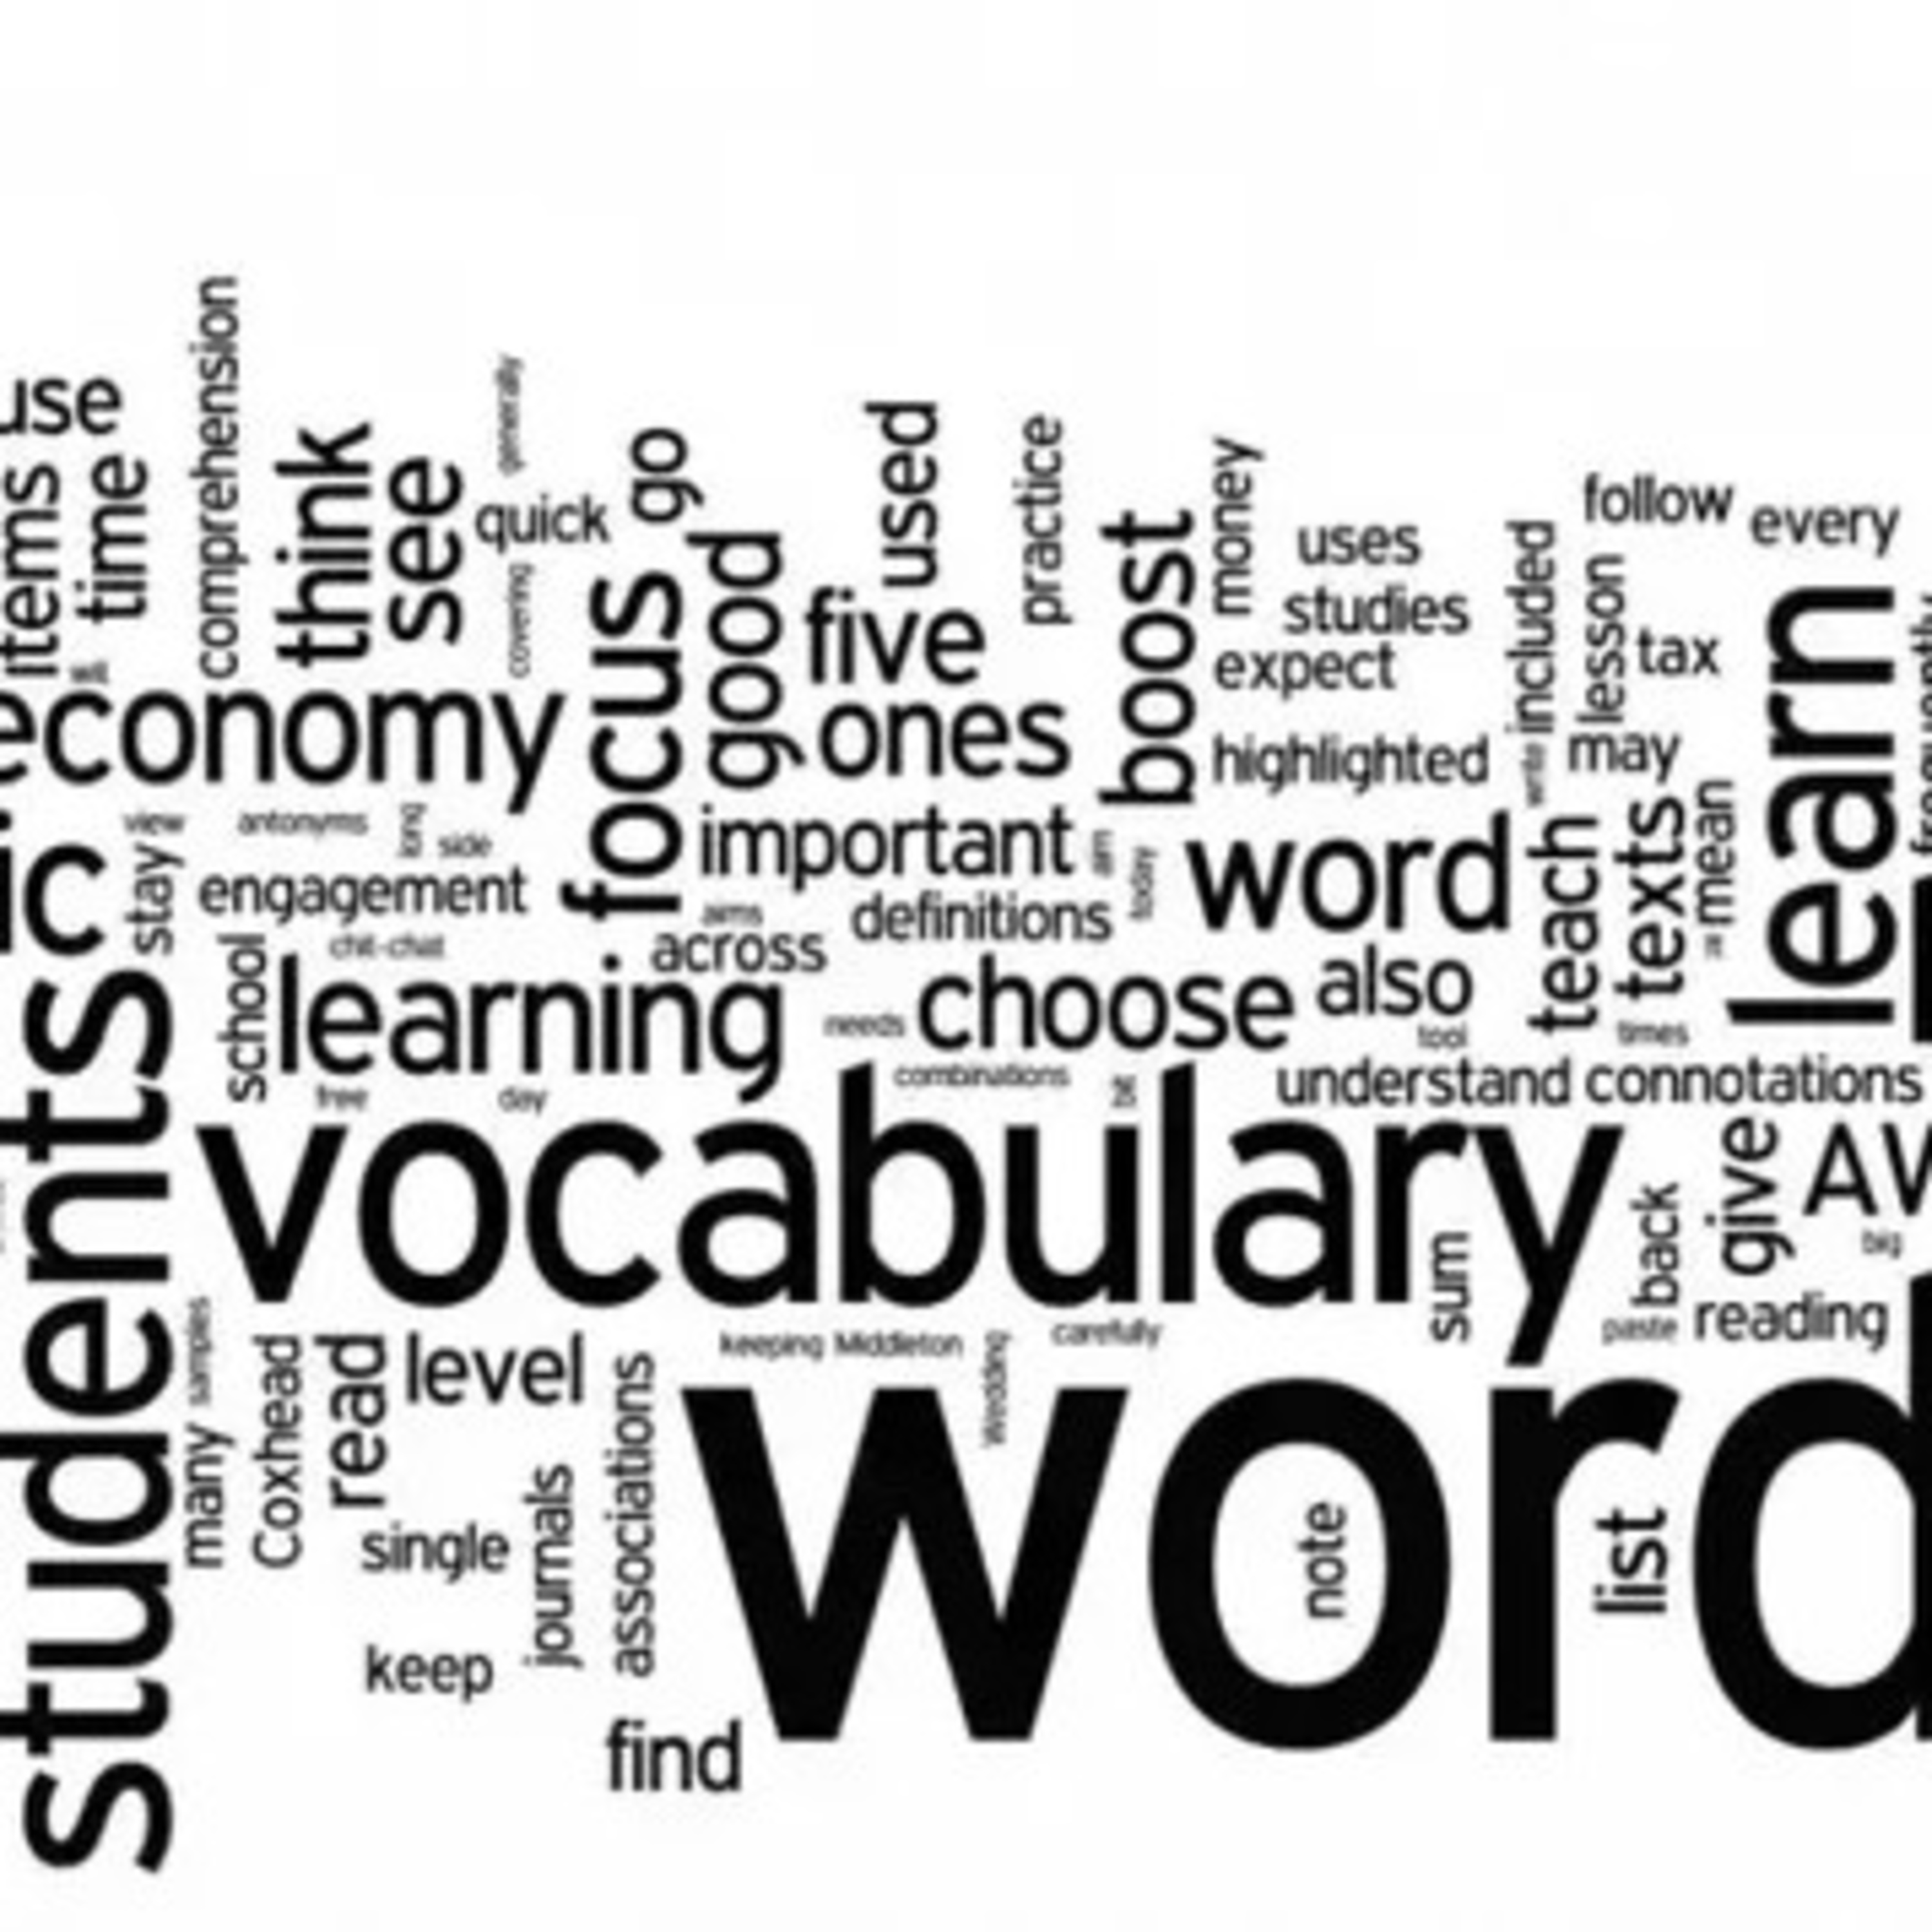 Do you want to learn 325 new words in a year?